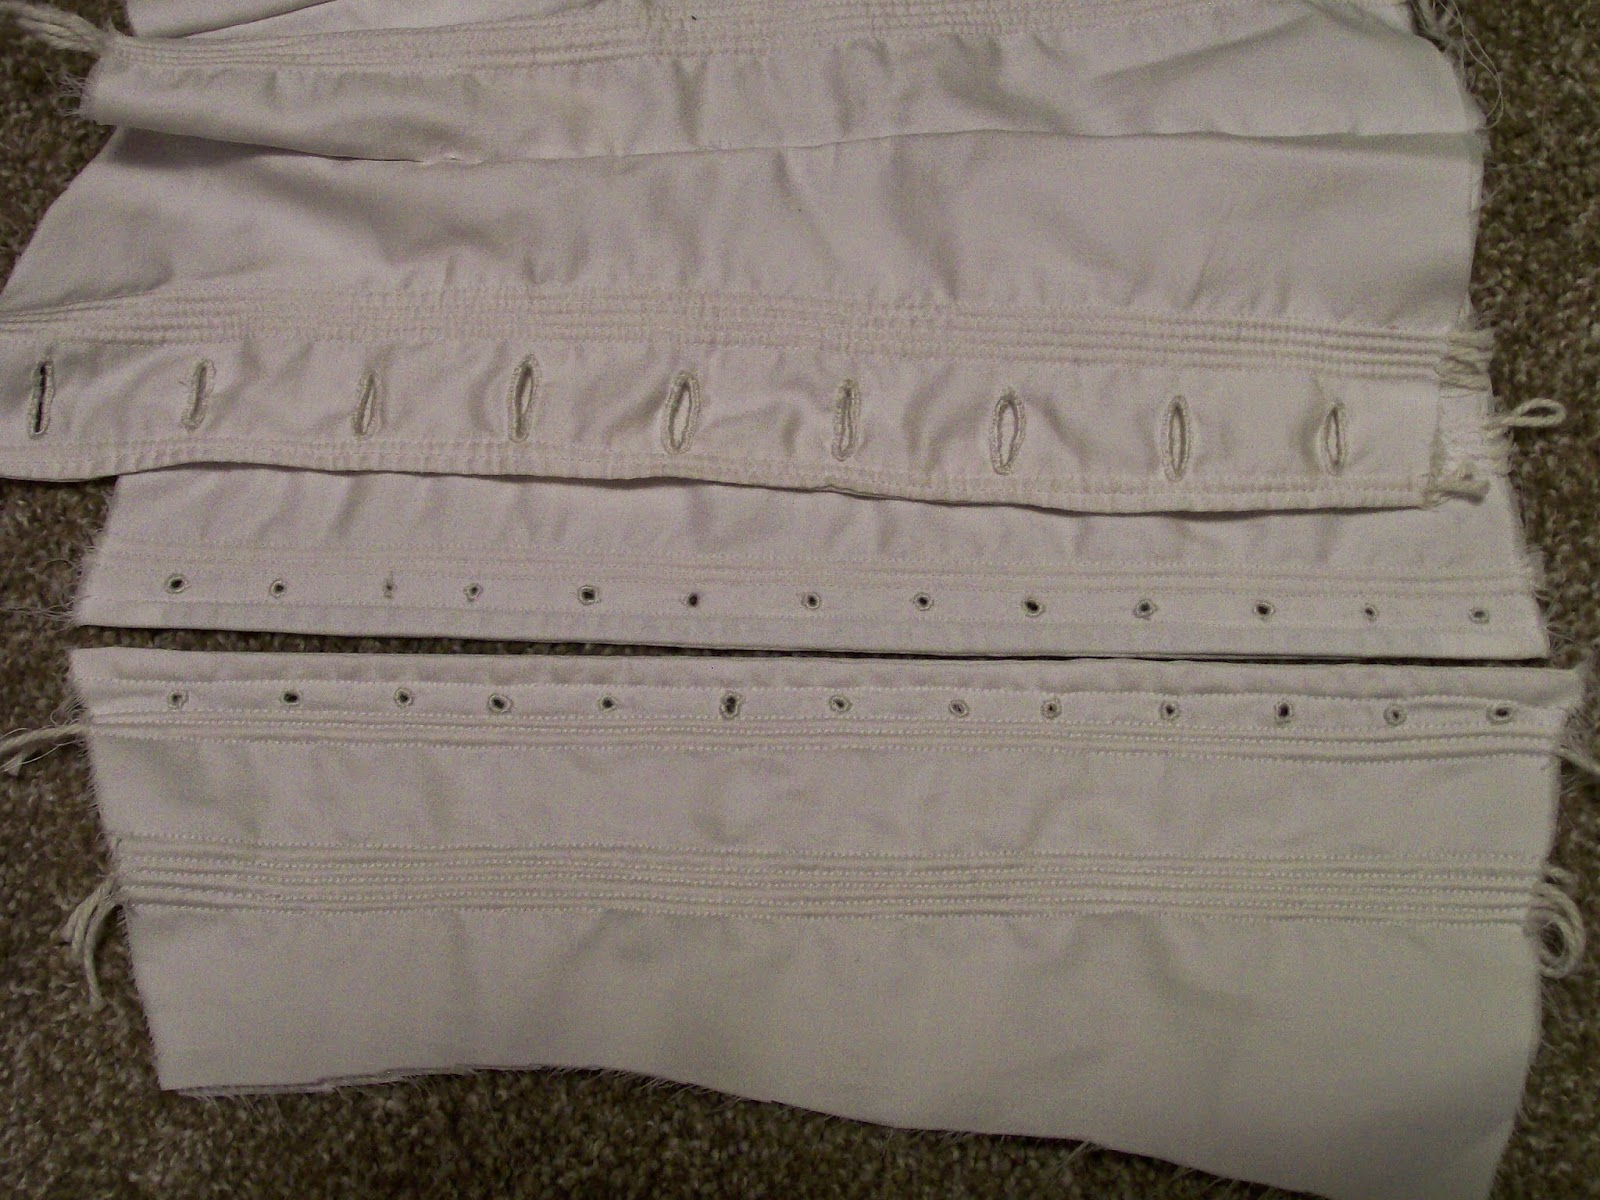 Hand sewn eyelet and button holes on an 1850s style corded corset.